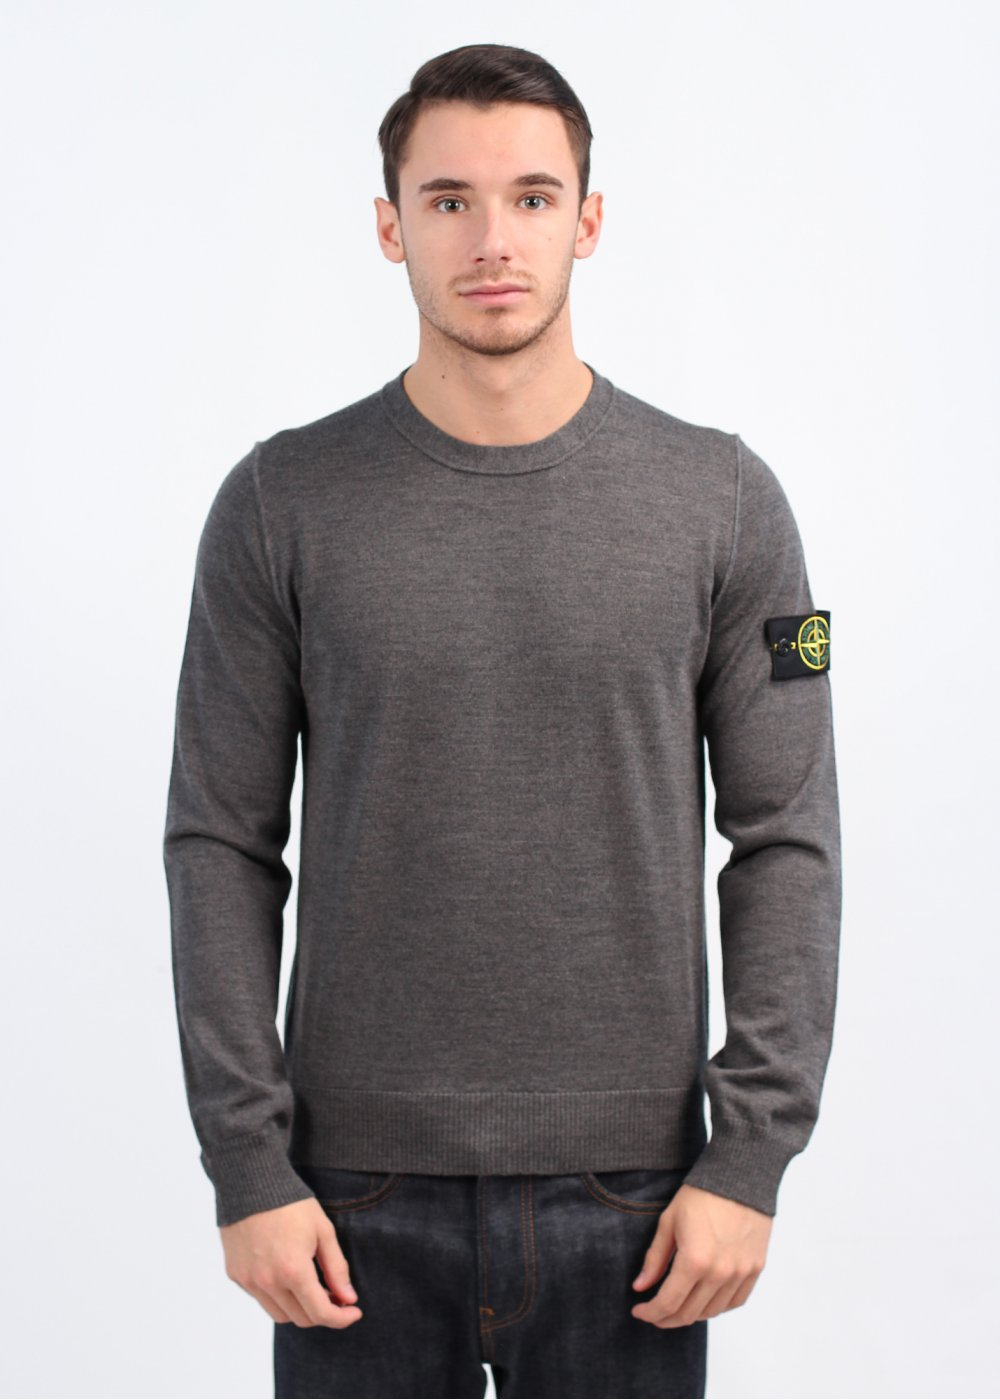 stone island thin sweater grey. Black Bedroom Furniture Sets. Home Design Ideas